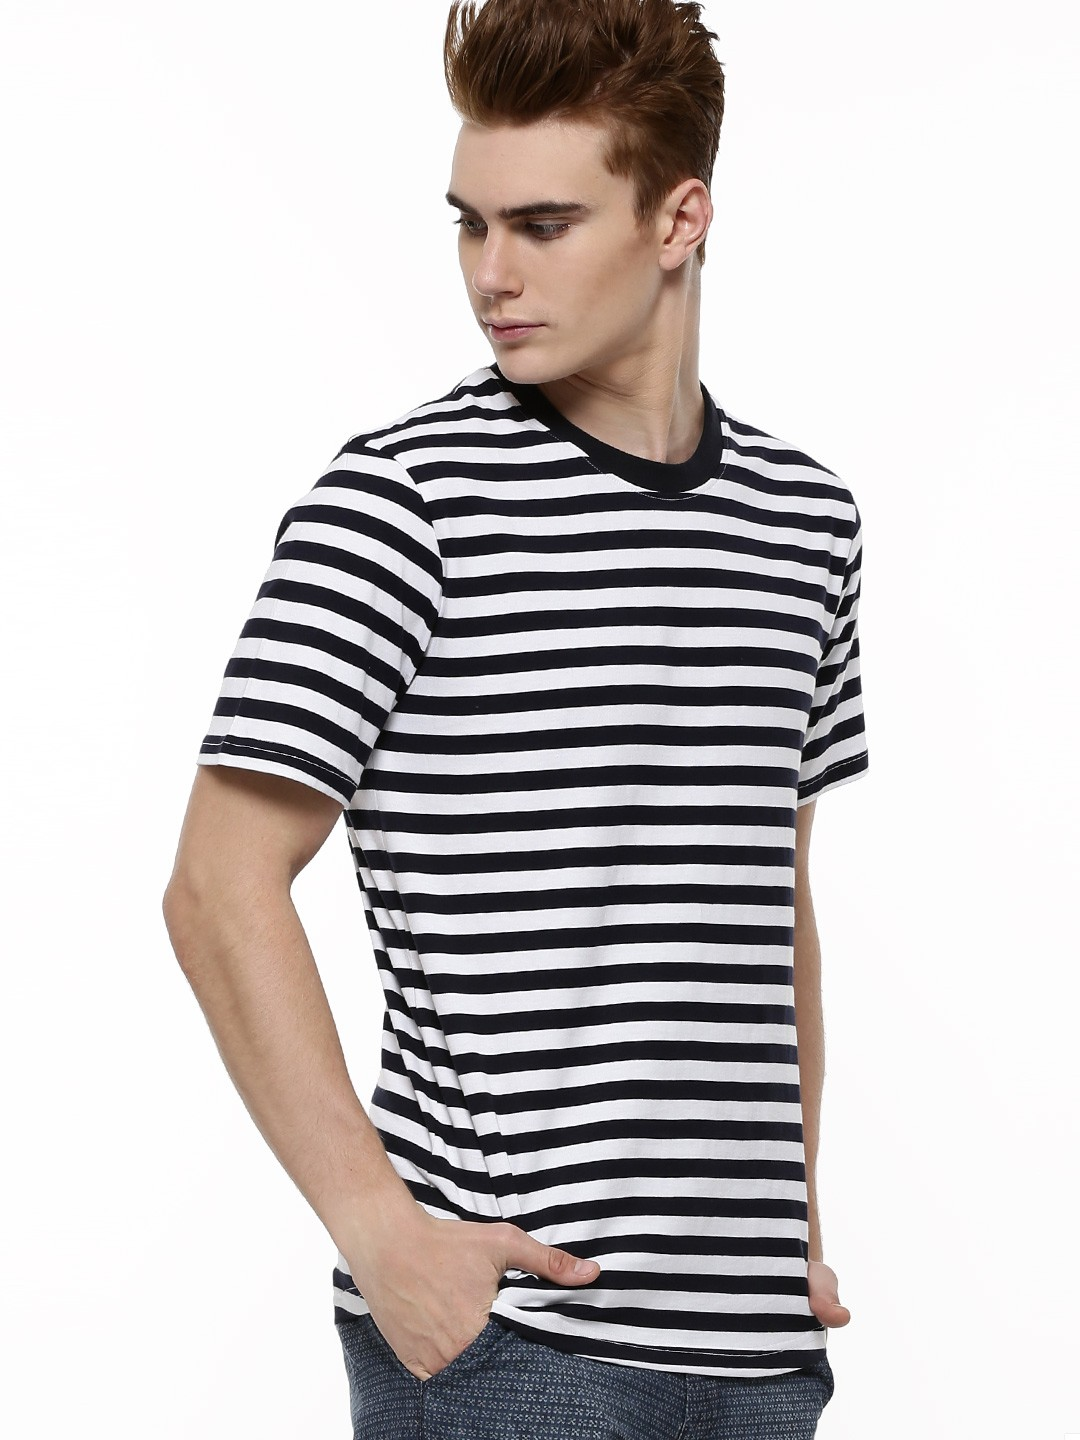 Buy BROWN BOY Stripe Crew Neck T-Shirt For Men - Men's Black White ...